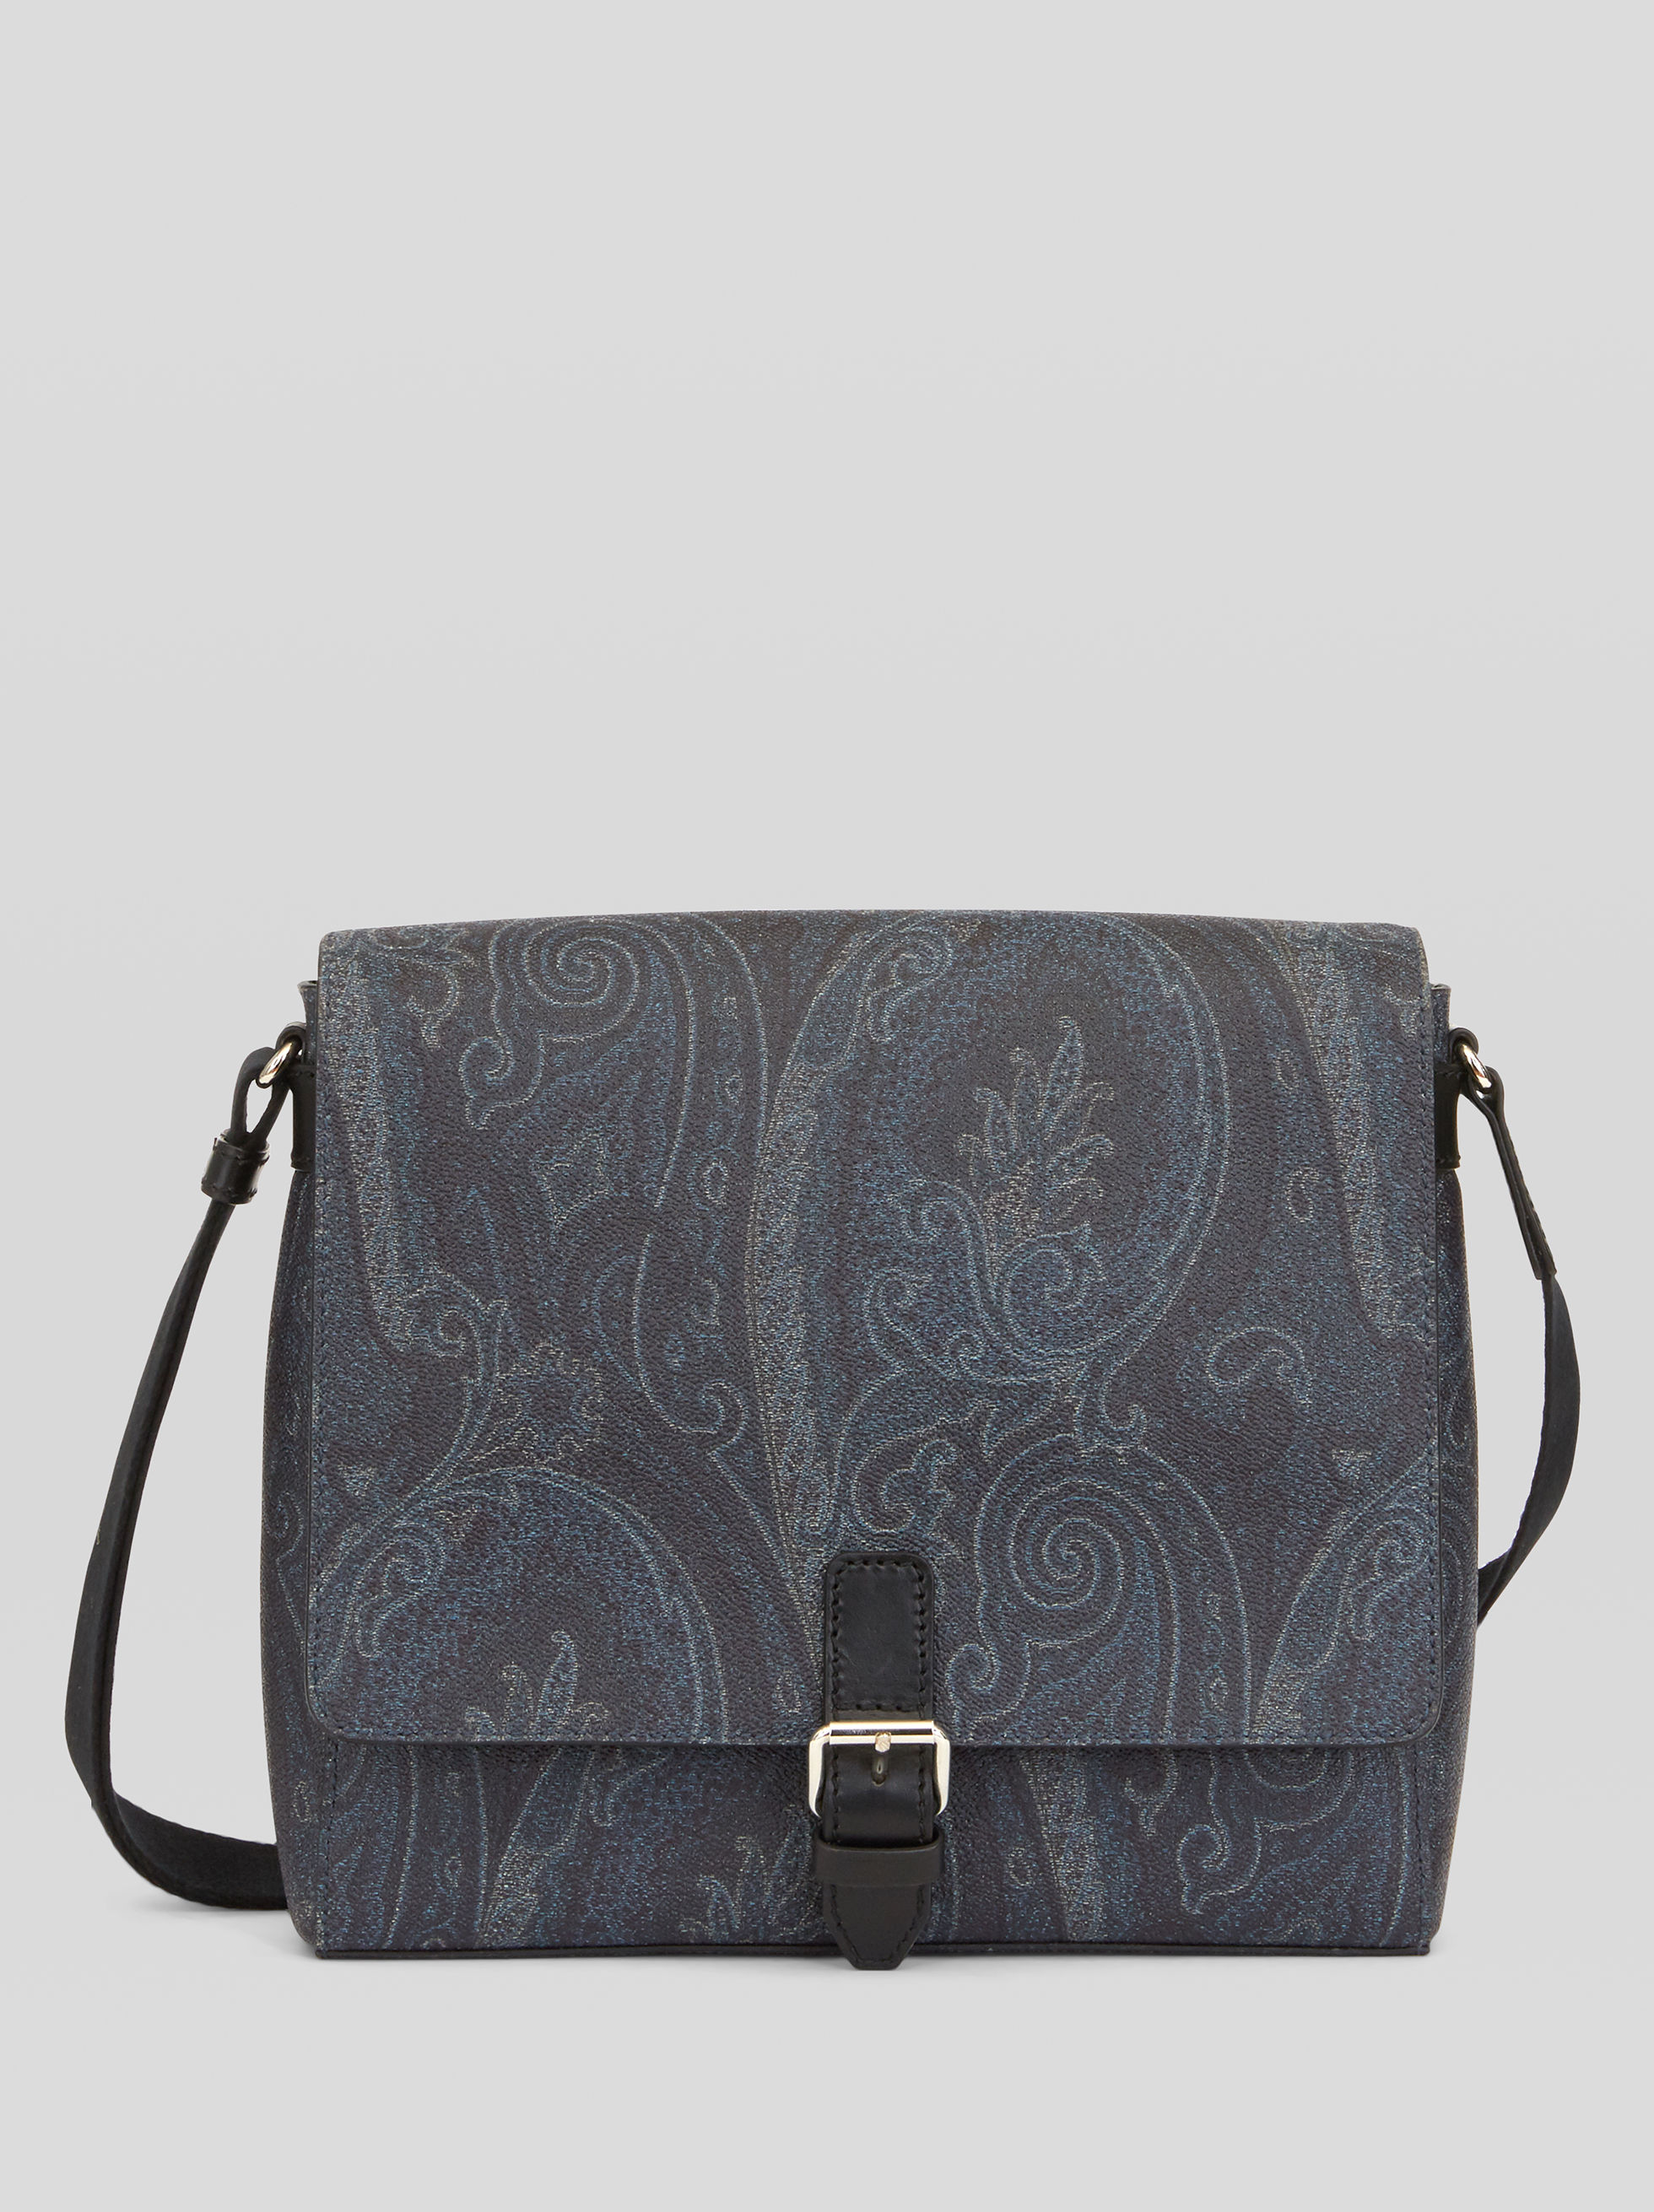 MESSENGER BAG WITH PAISLEY DESIGNS